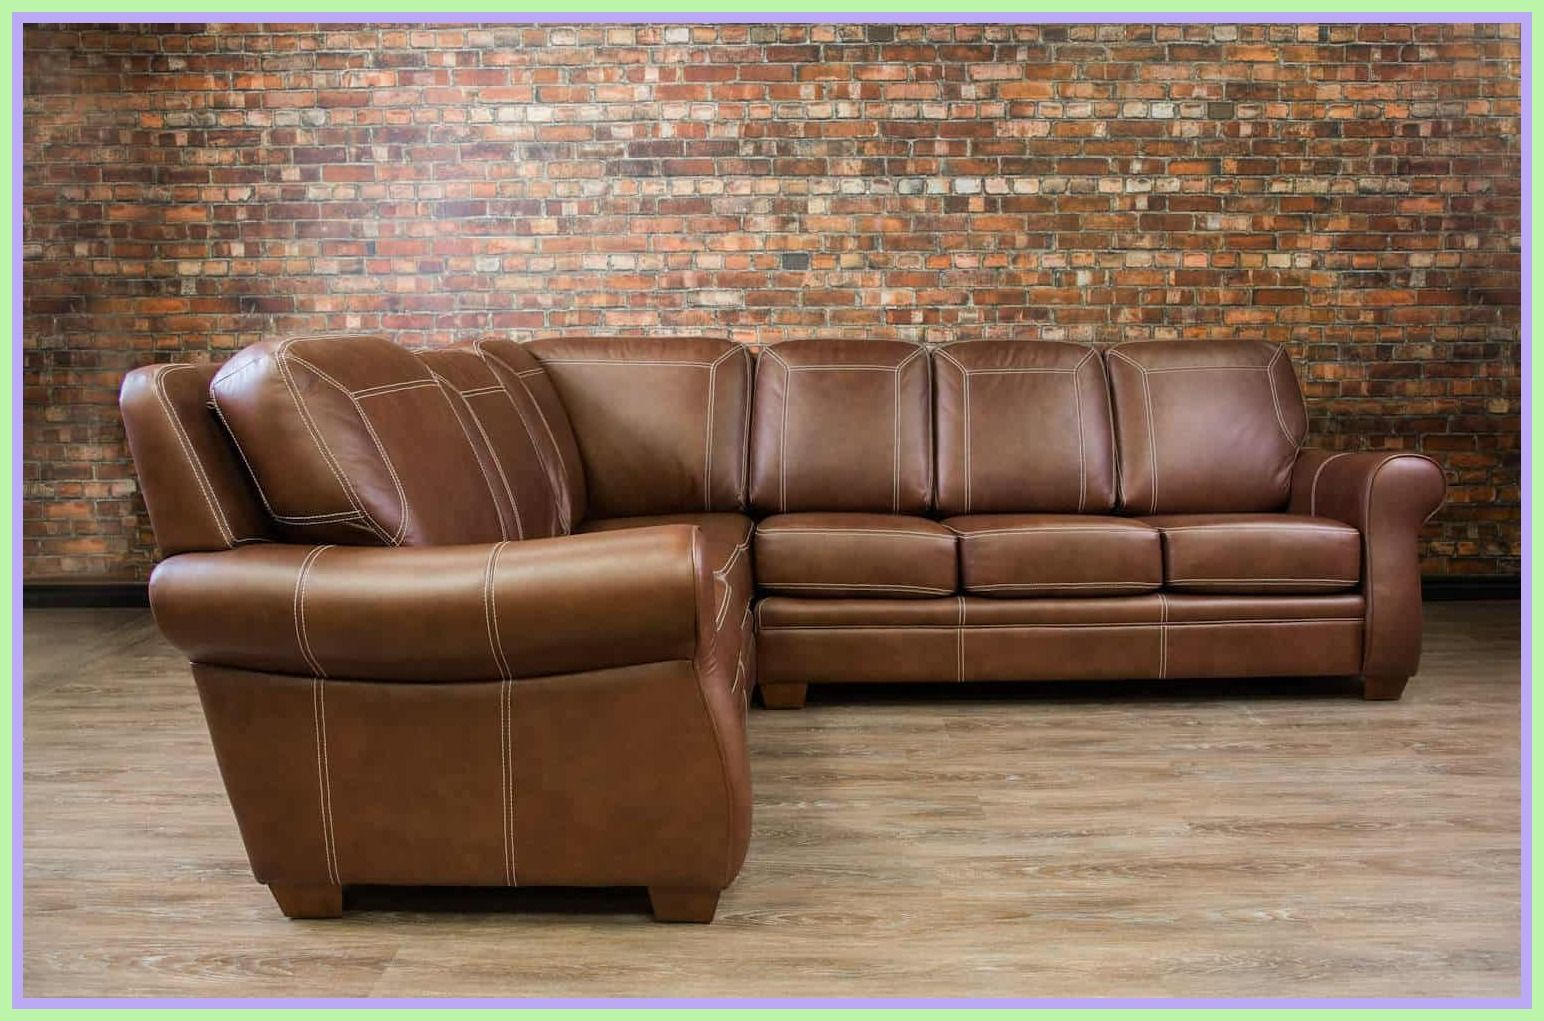 91 Reference Of Leather Sofa Sectional Canada In 2020 Ikea Leather Sofa Leather Sofa Sale Leather Sofa